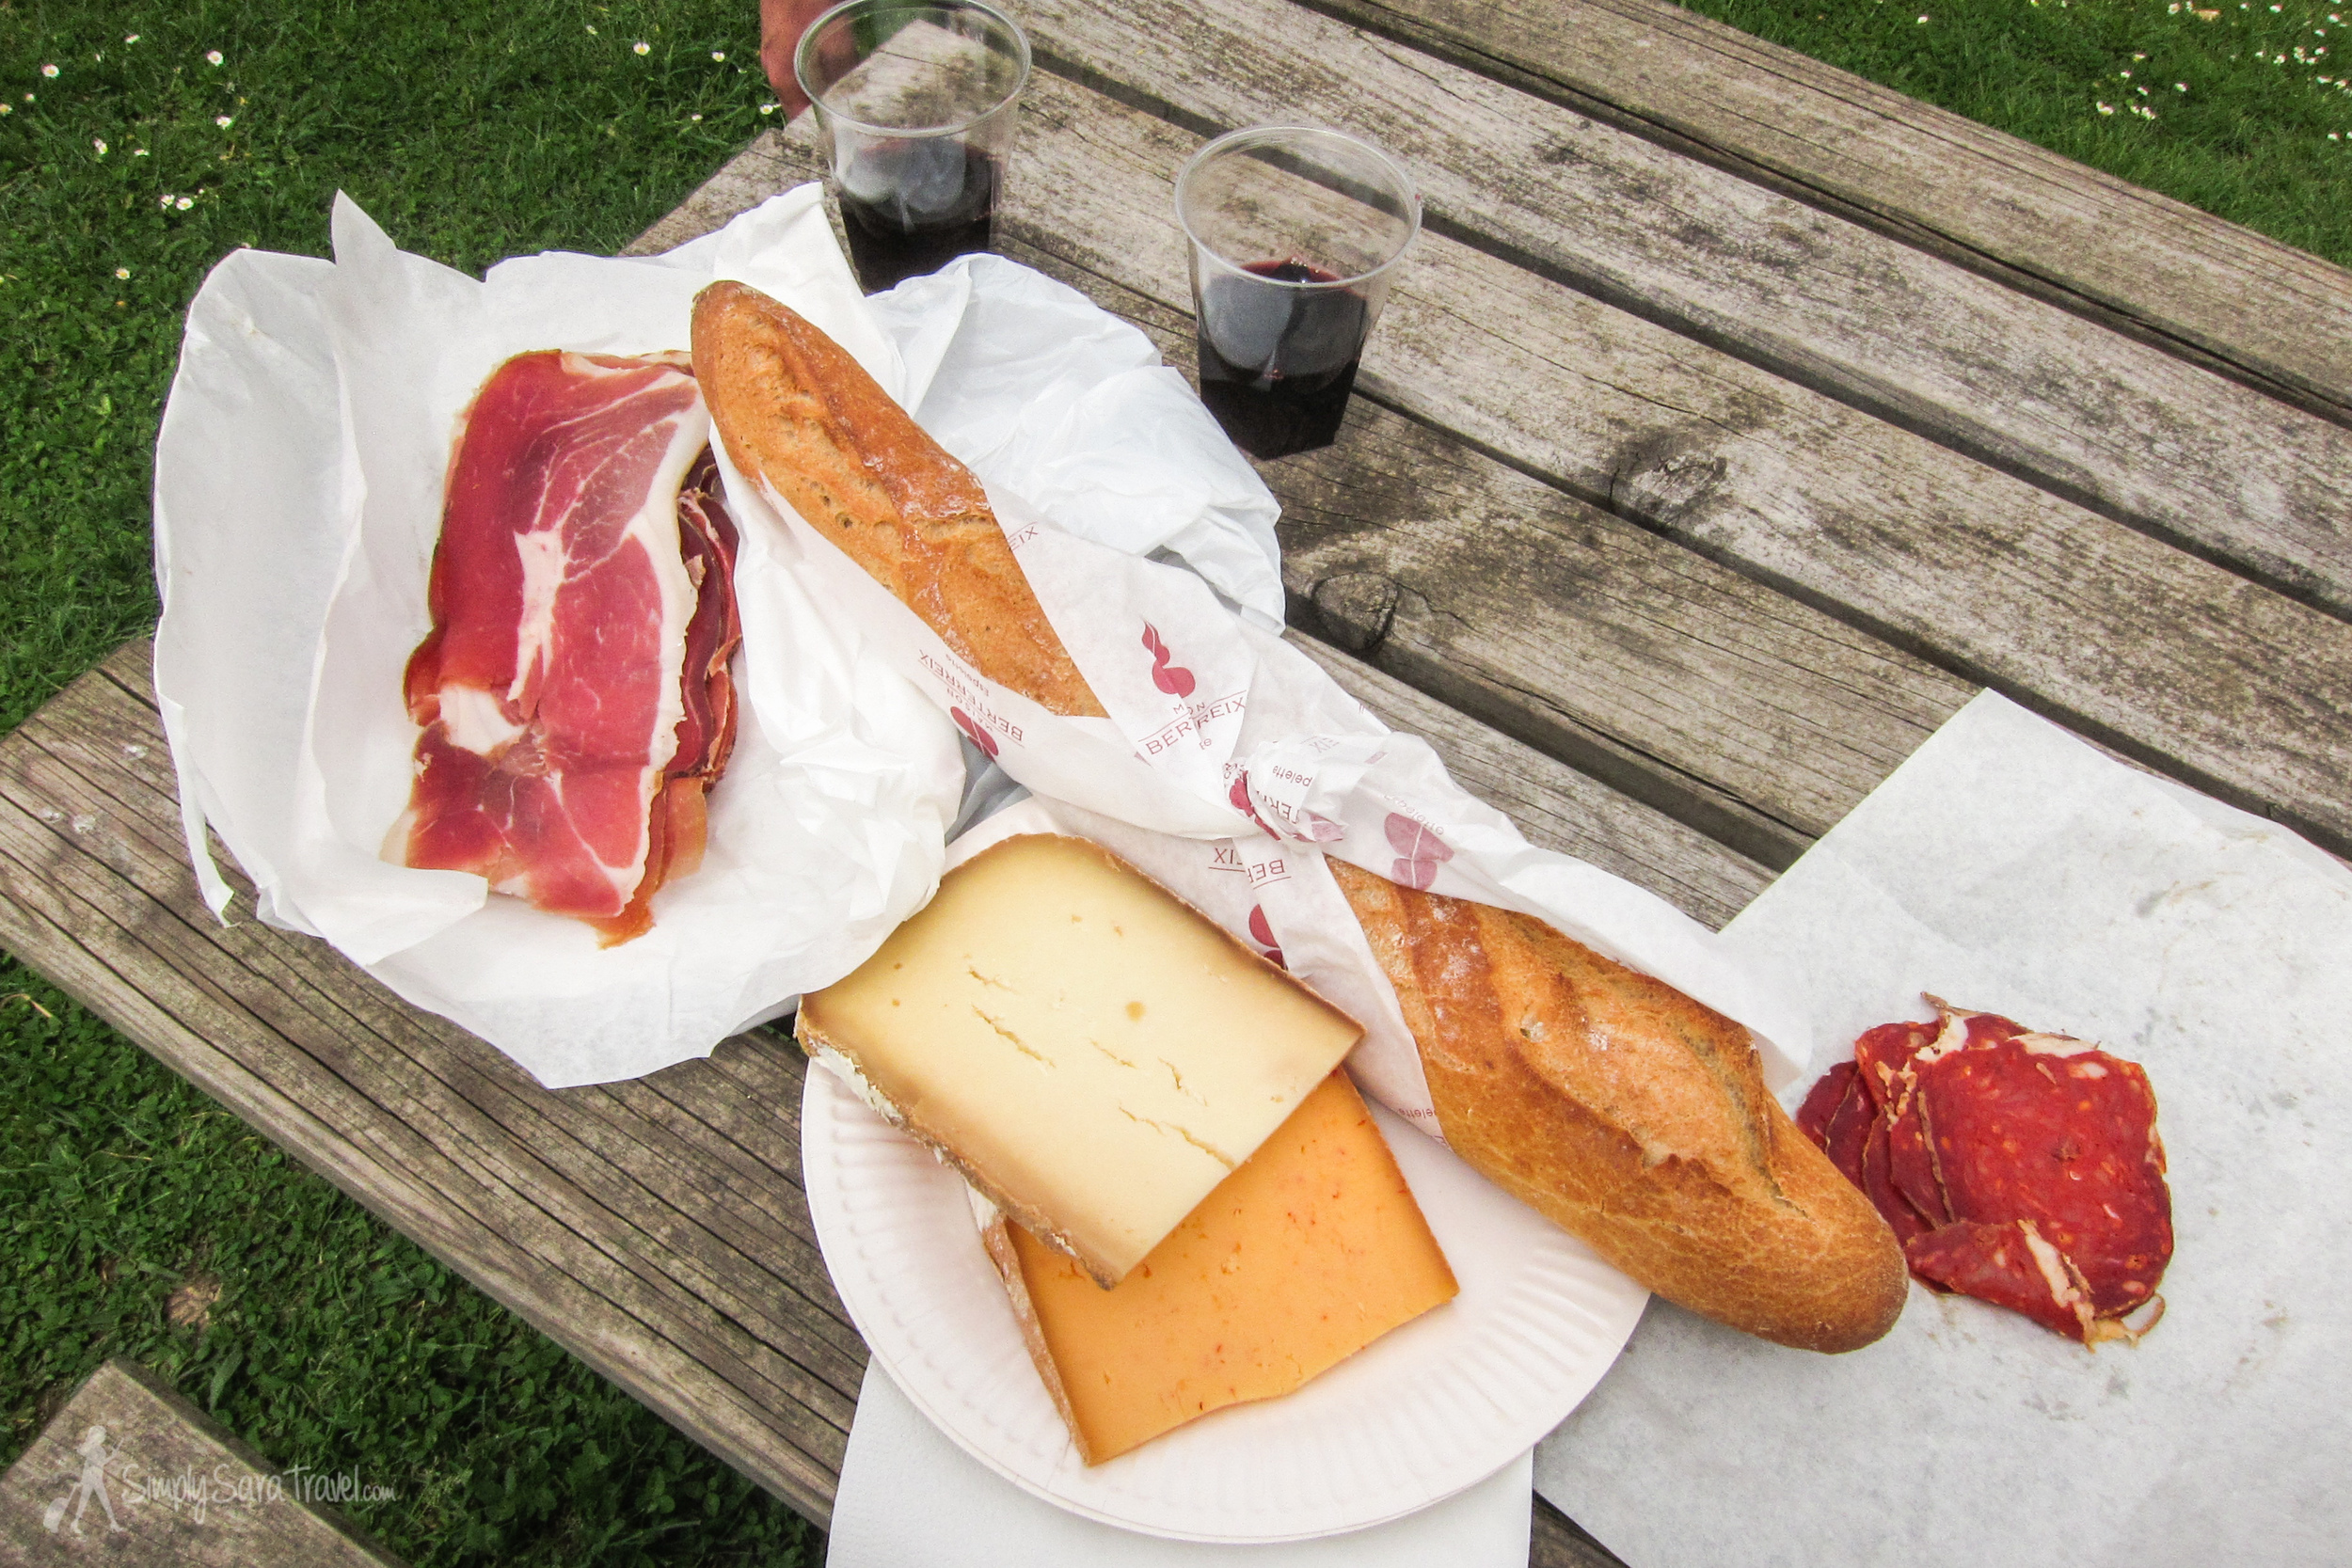 All of the essentials are here - bread, cheese, and wine - and some charcuterie for a nice little finishing touch.